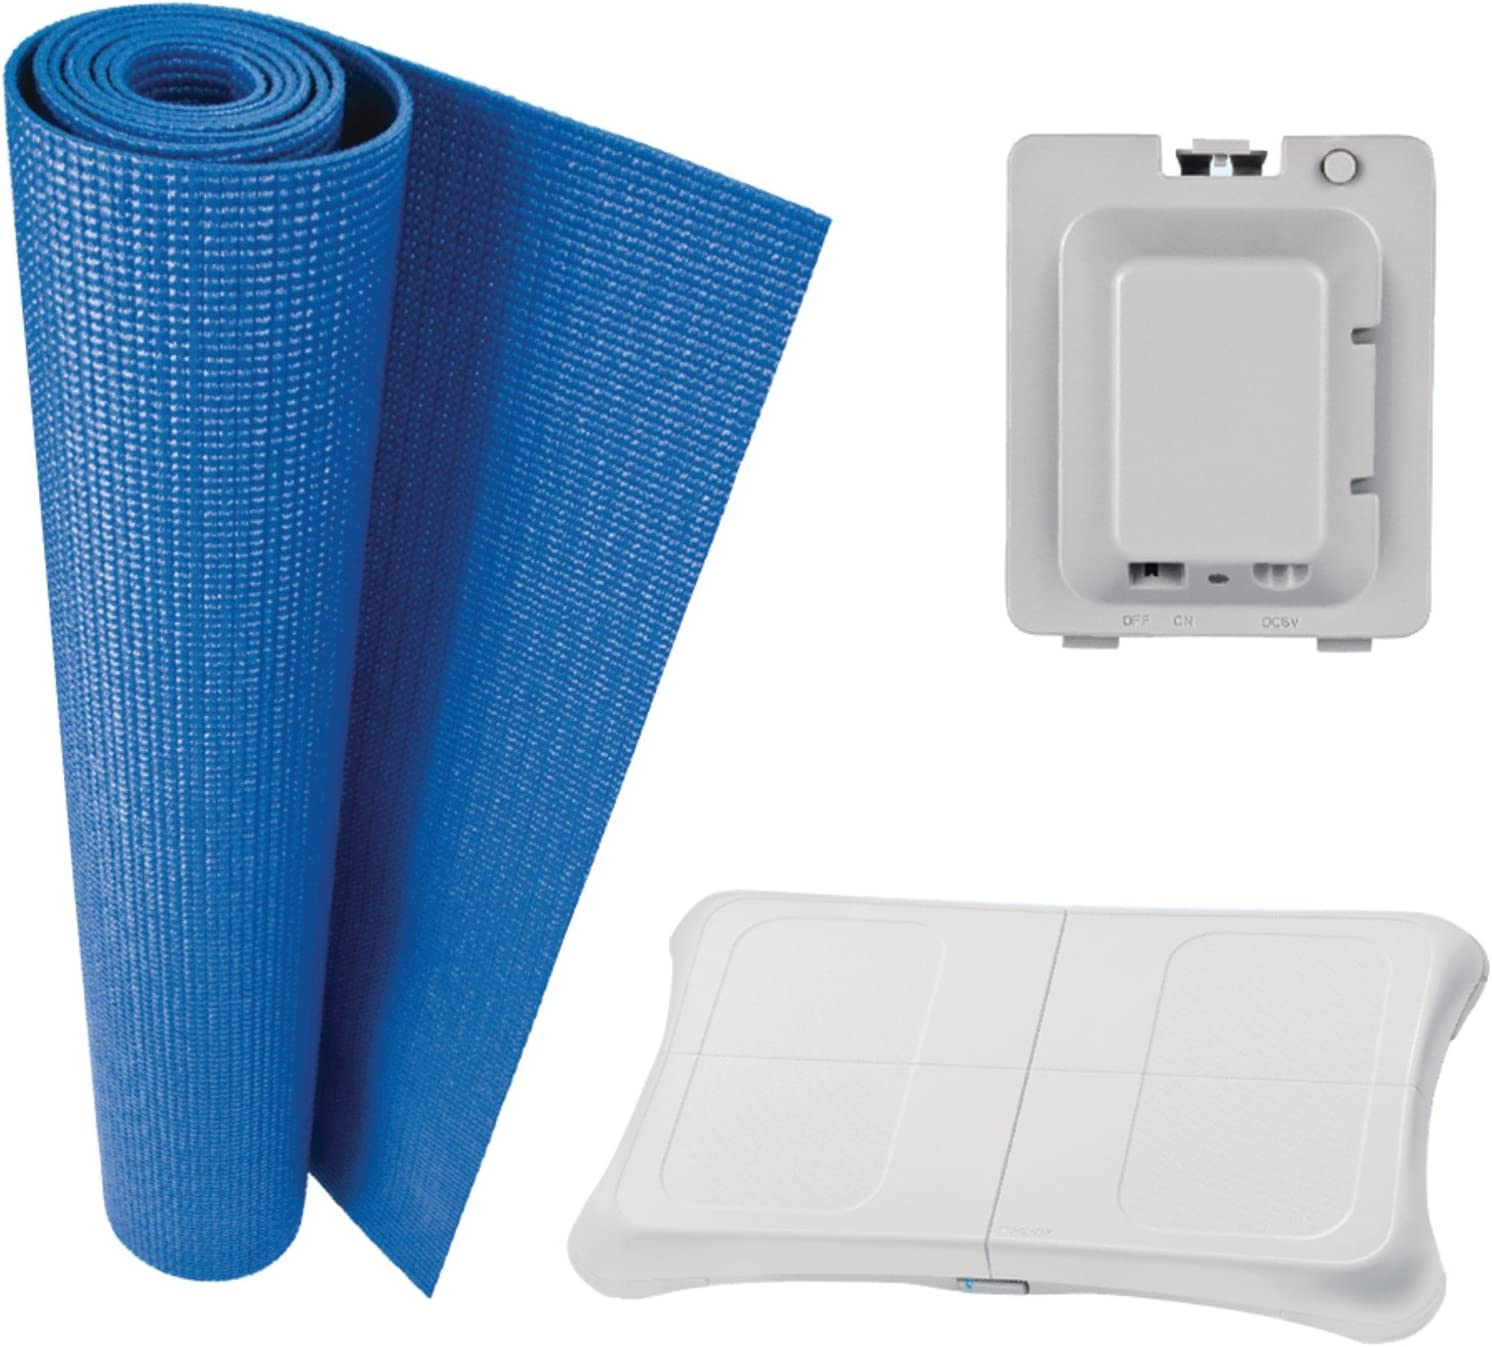 Amazon.com: Wii Fit 3 in 1 Starter Kit: Video Games